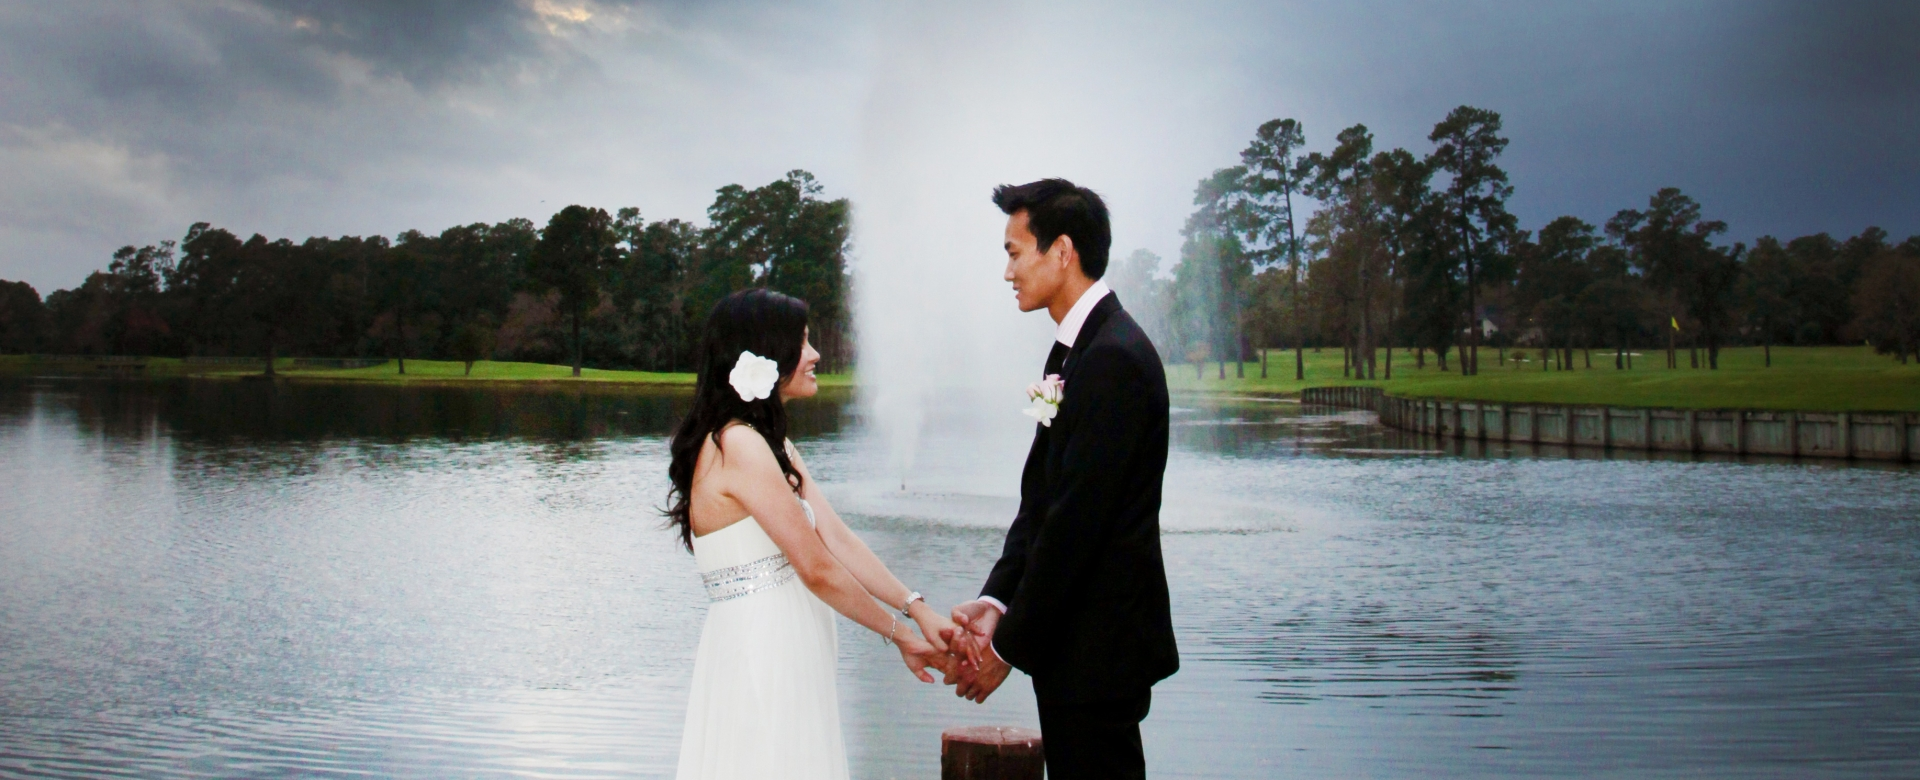 A bride and groom hold hands on the edge of a wooden dock.